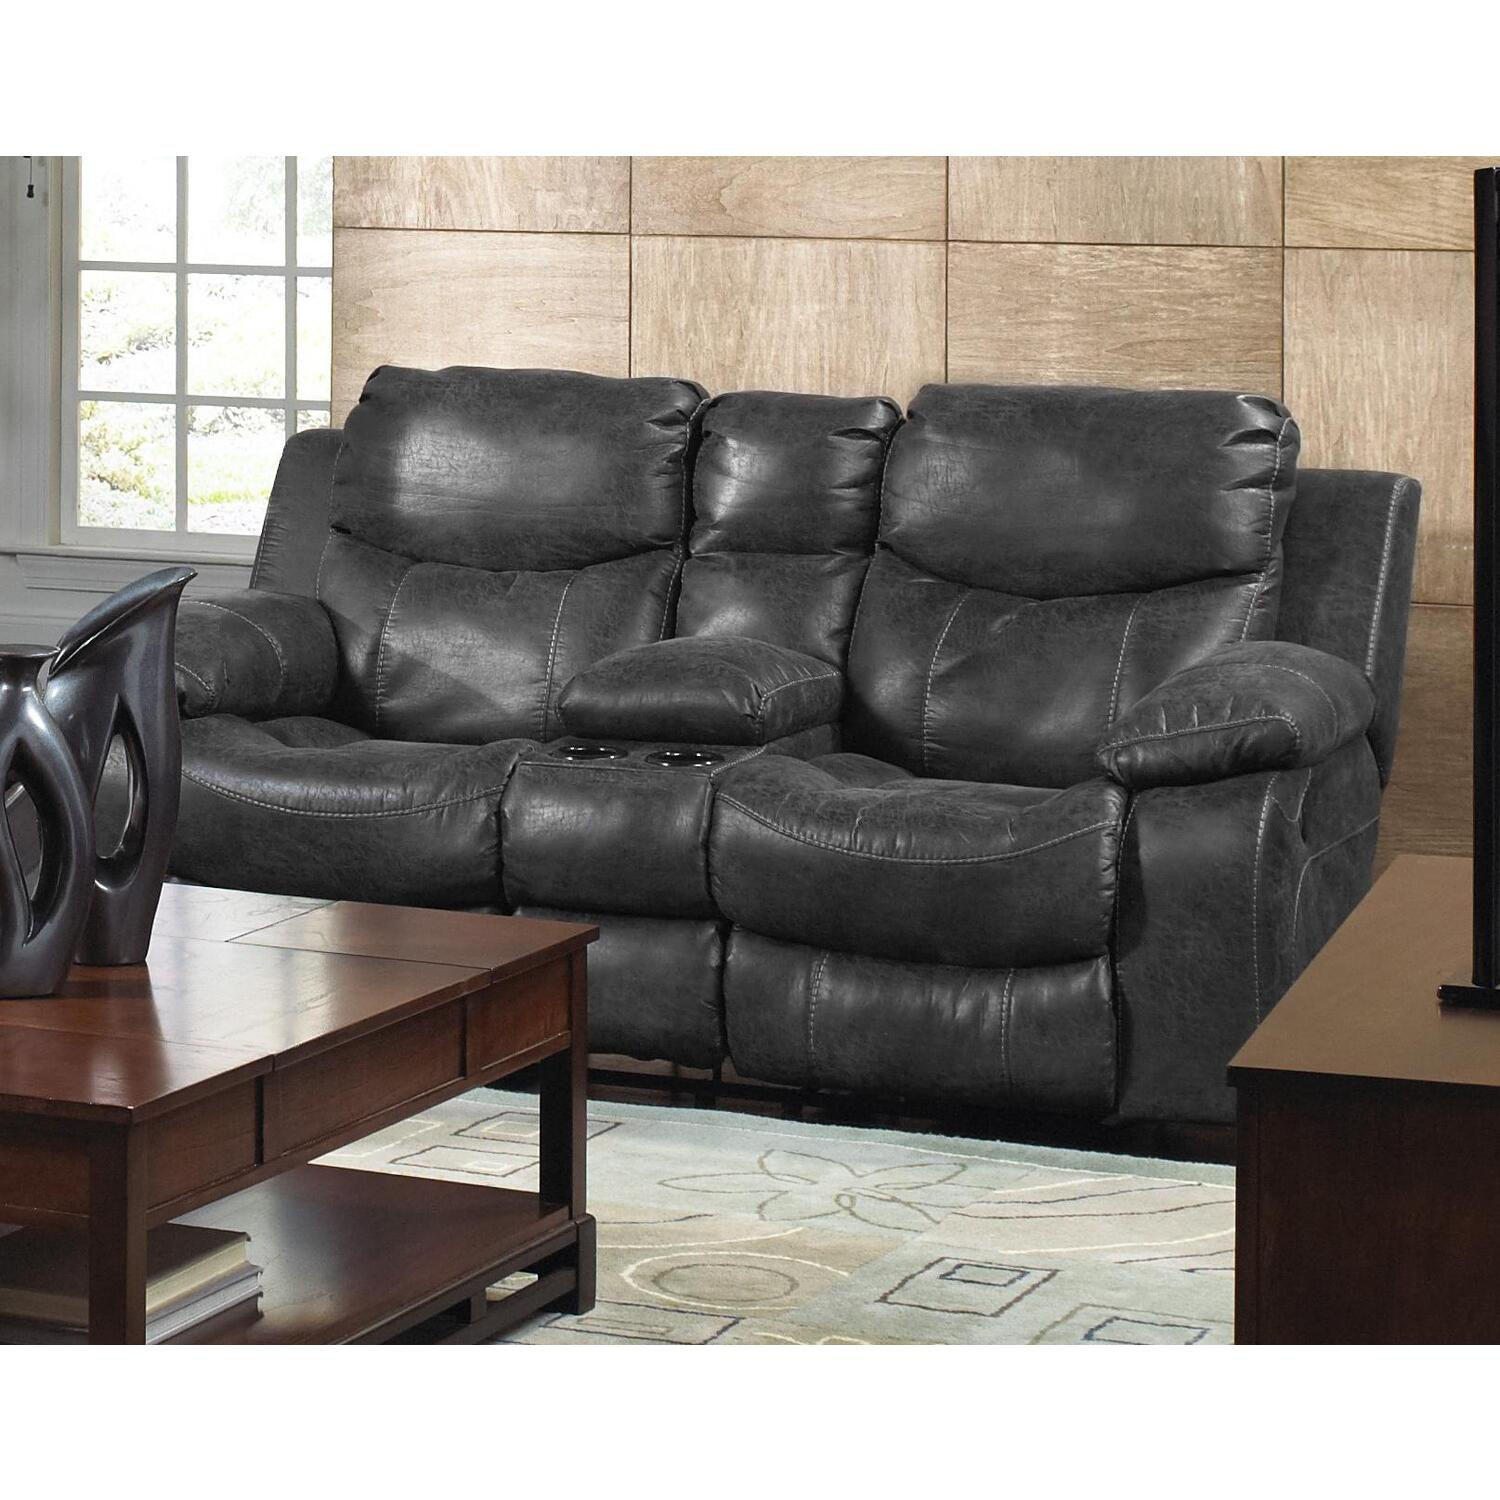 robinson and leather sofa seats for toddlers catalina reclining console loveseat from 1089 00 to